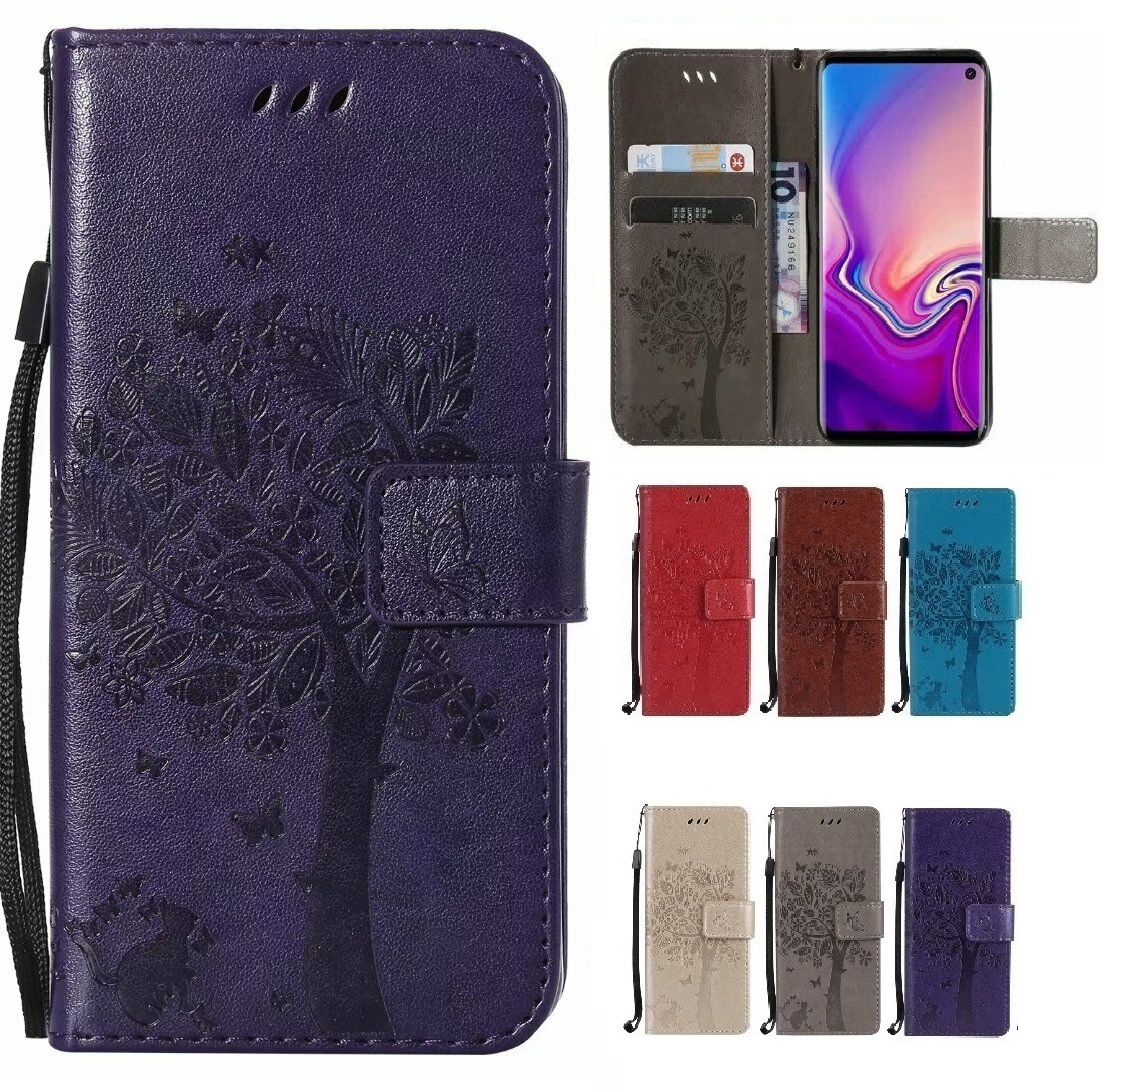 Hot sale! Case TOP Quality phone bag flip PU Leather <font><b>Cover</b></font> With View For <font><b>Blackview</b></font> A60 PRO <font><b>Max</b></font> <font><b>1</b></font> A30 a20 pro image